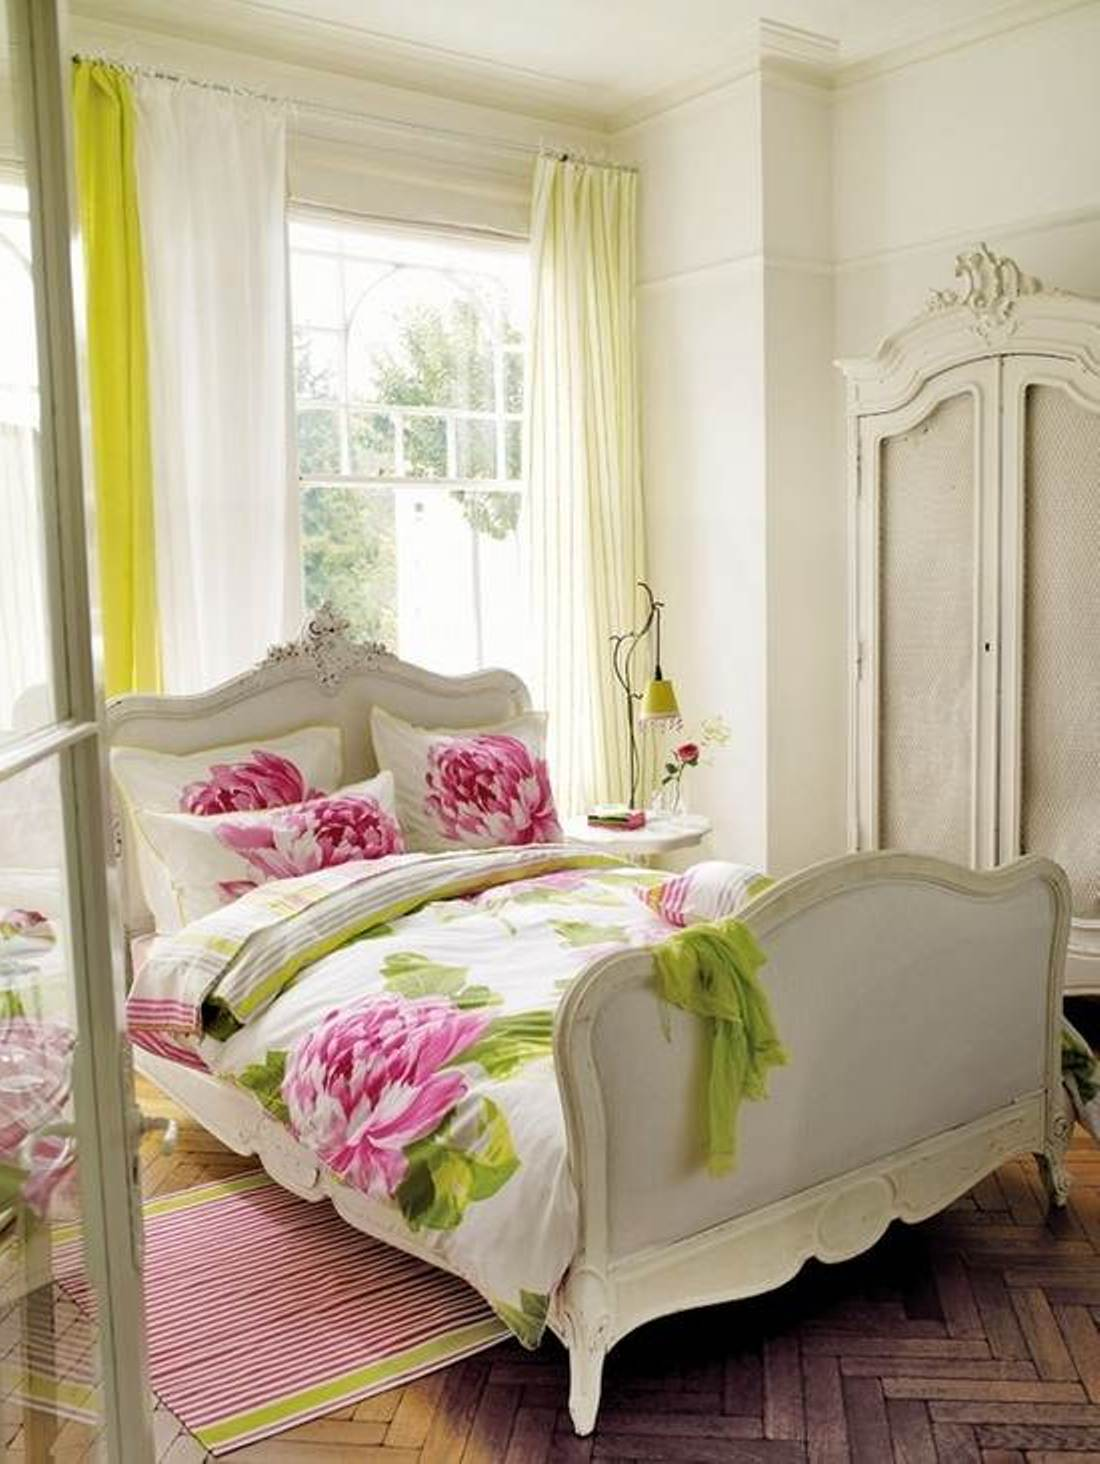 Bedroom ideas for women 2016 - 34 Flower Power